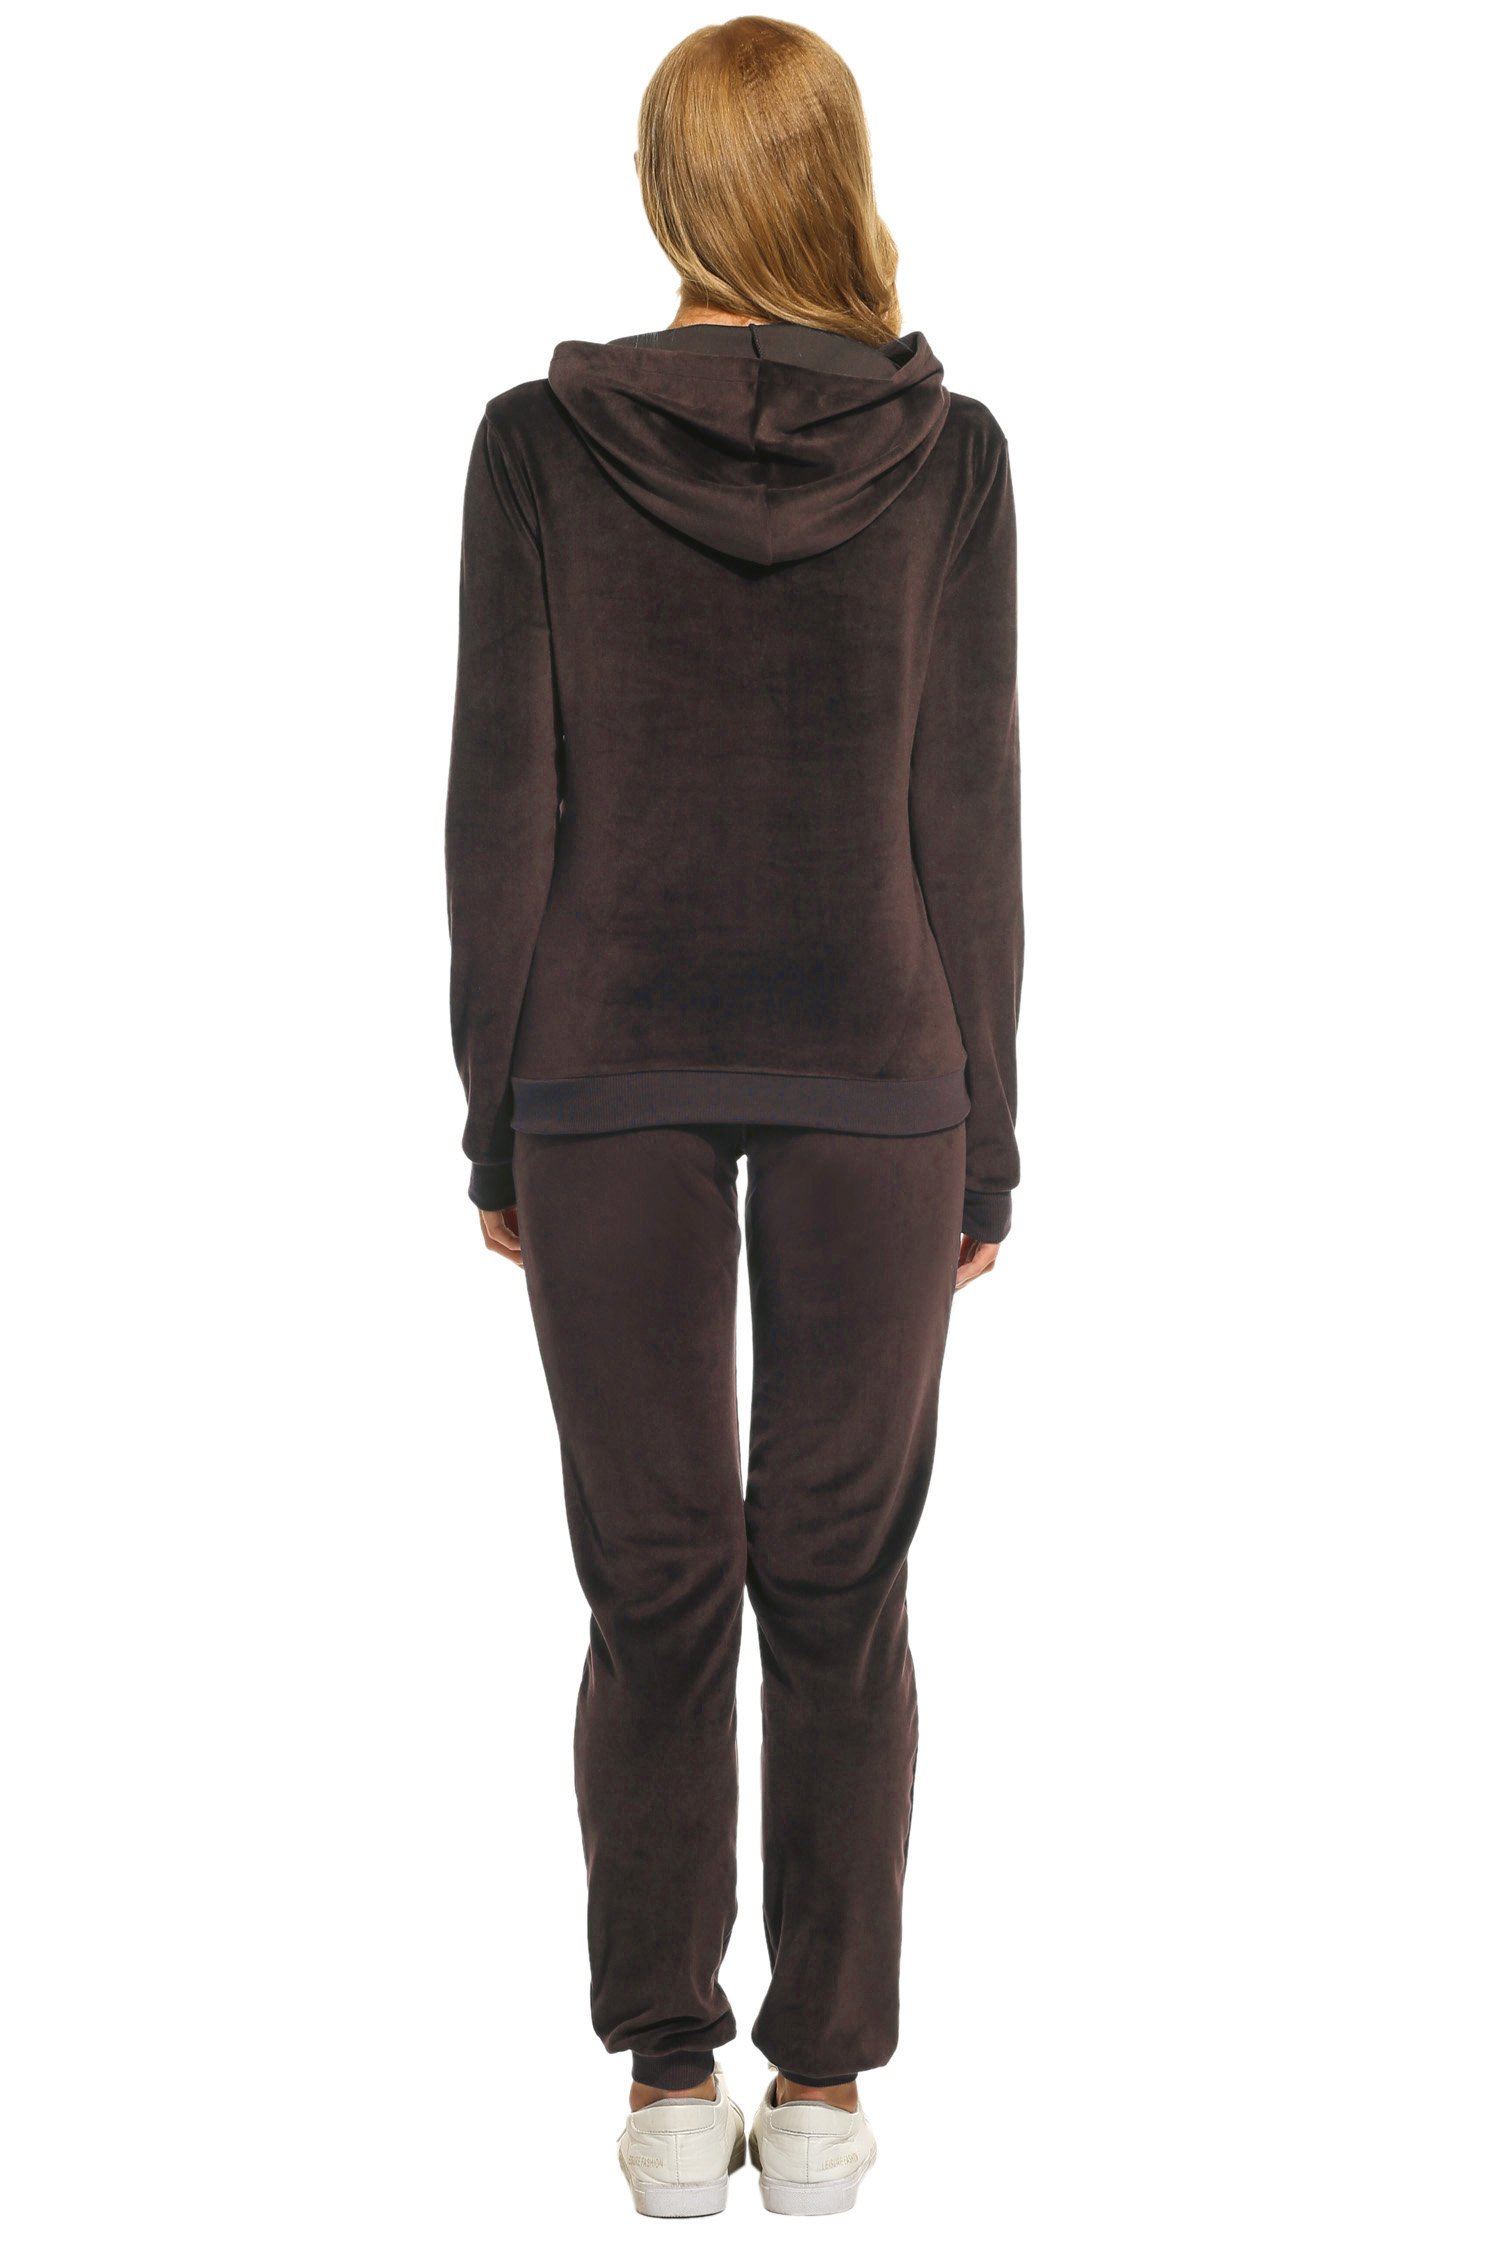 Hotouch Women's Sweatsuit Set Velour Hoodie and Track Pants Coffee L by Hotouch (Image #4)